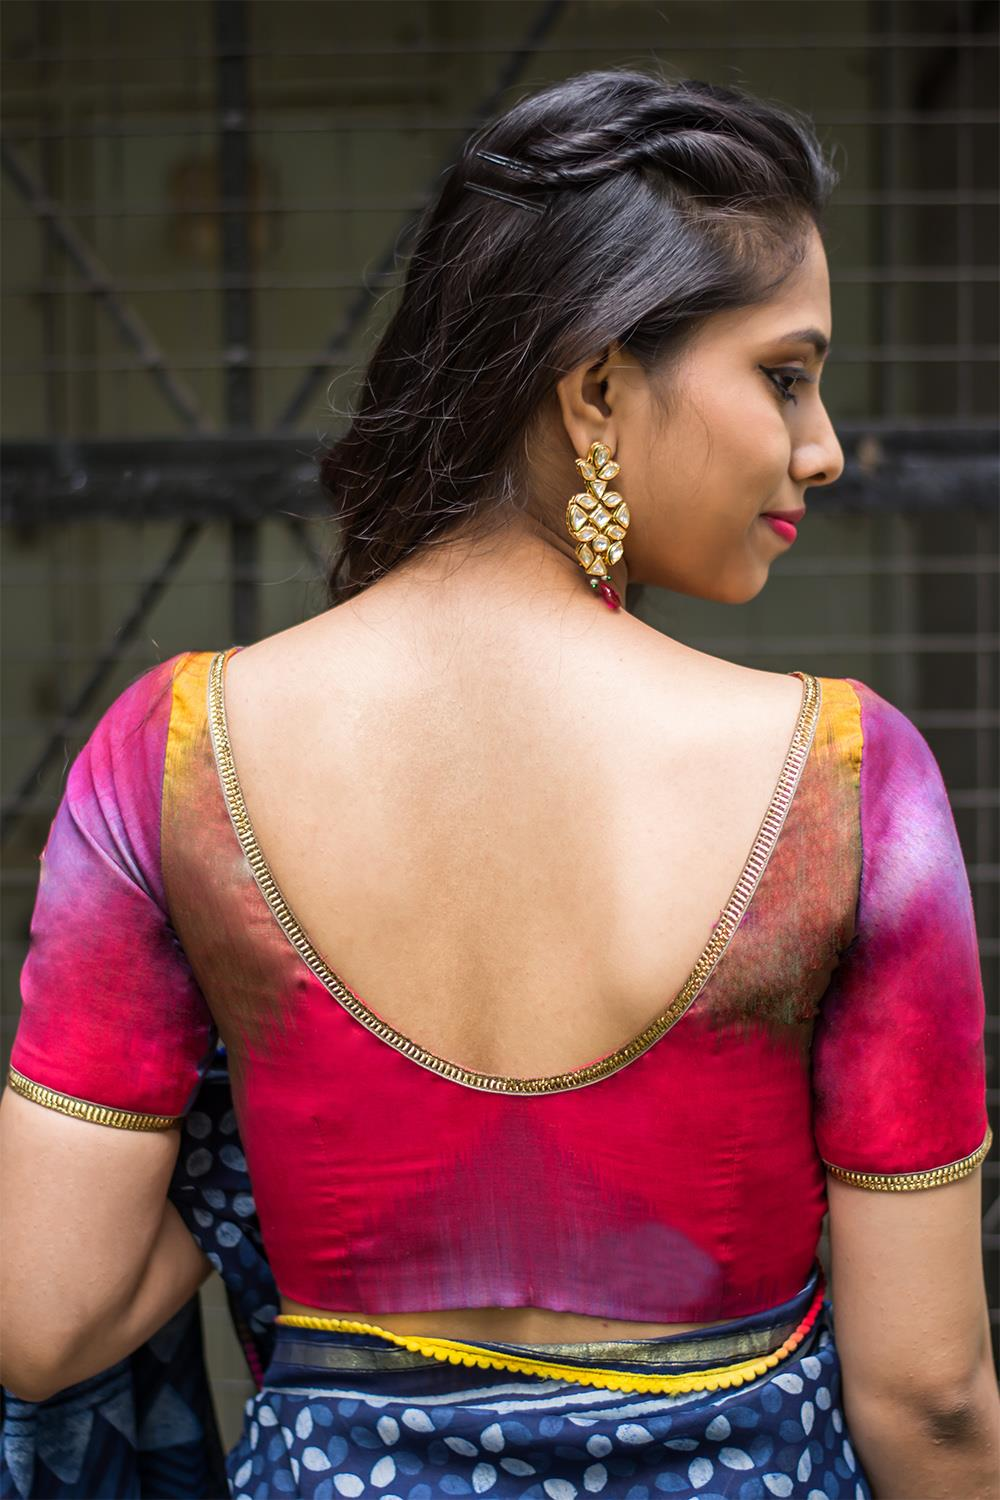 Multicolour Ikat boat neck blouse with gota lace detailing - House of Blouse